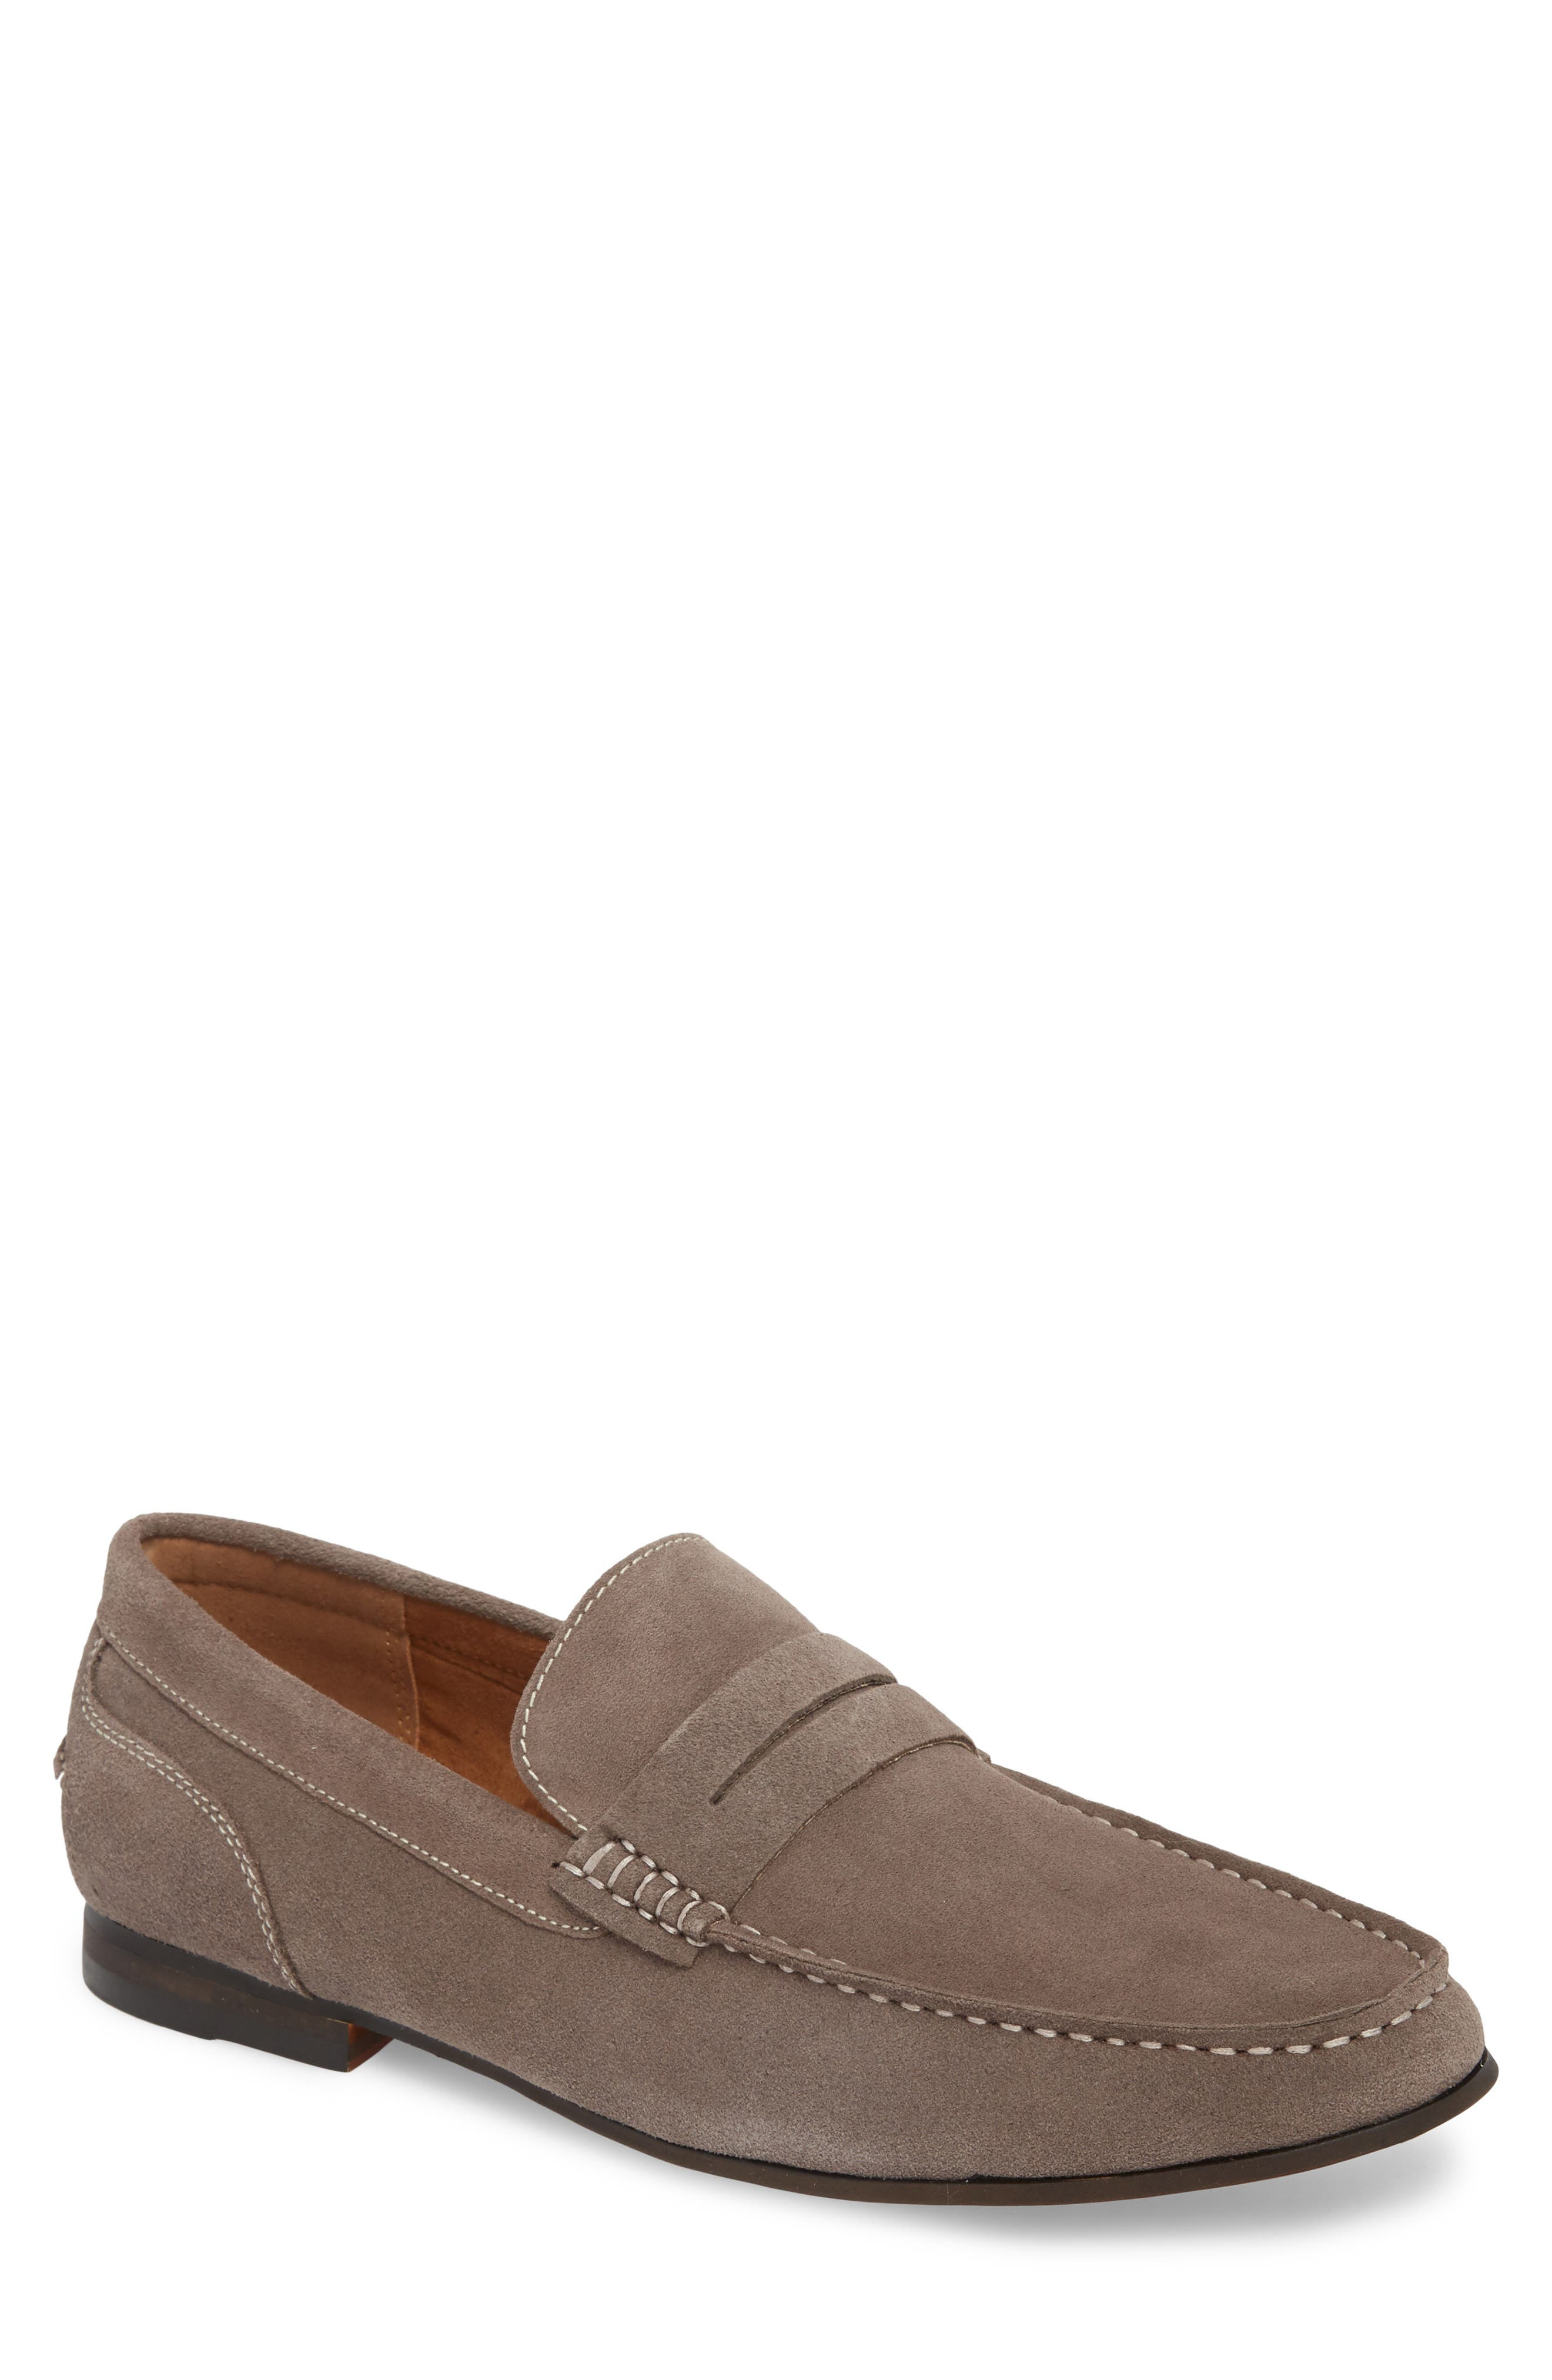 Crespo Penny Loafer,                             Main thumbnail 1, color,                             020